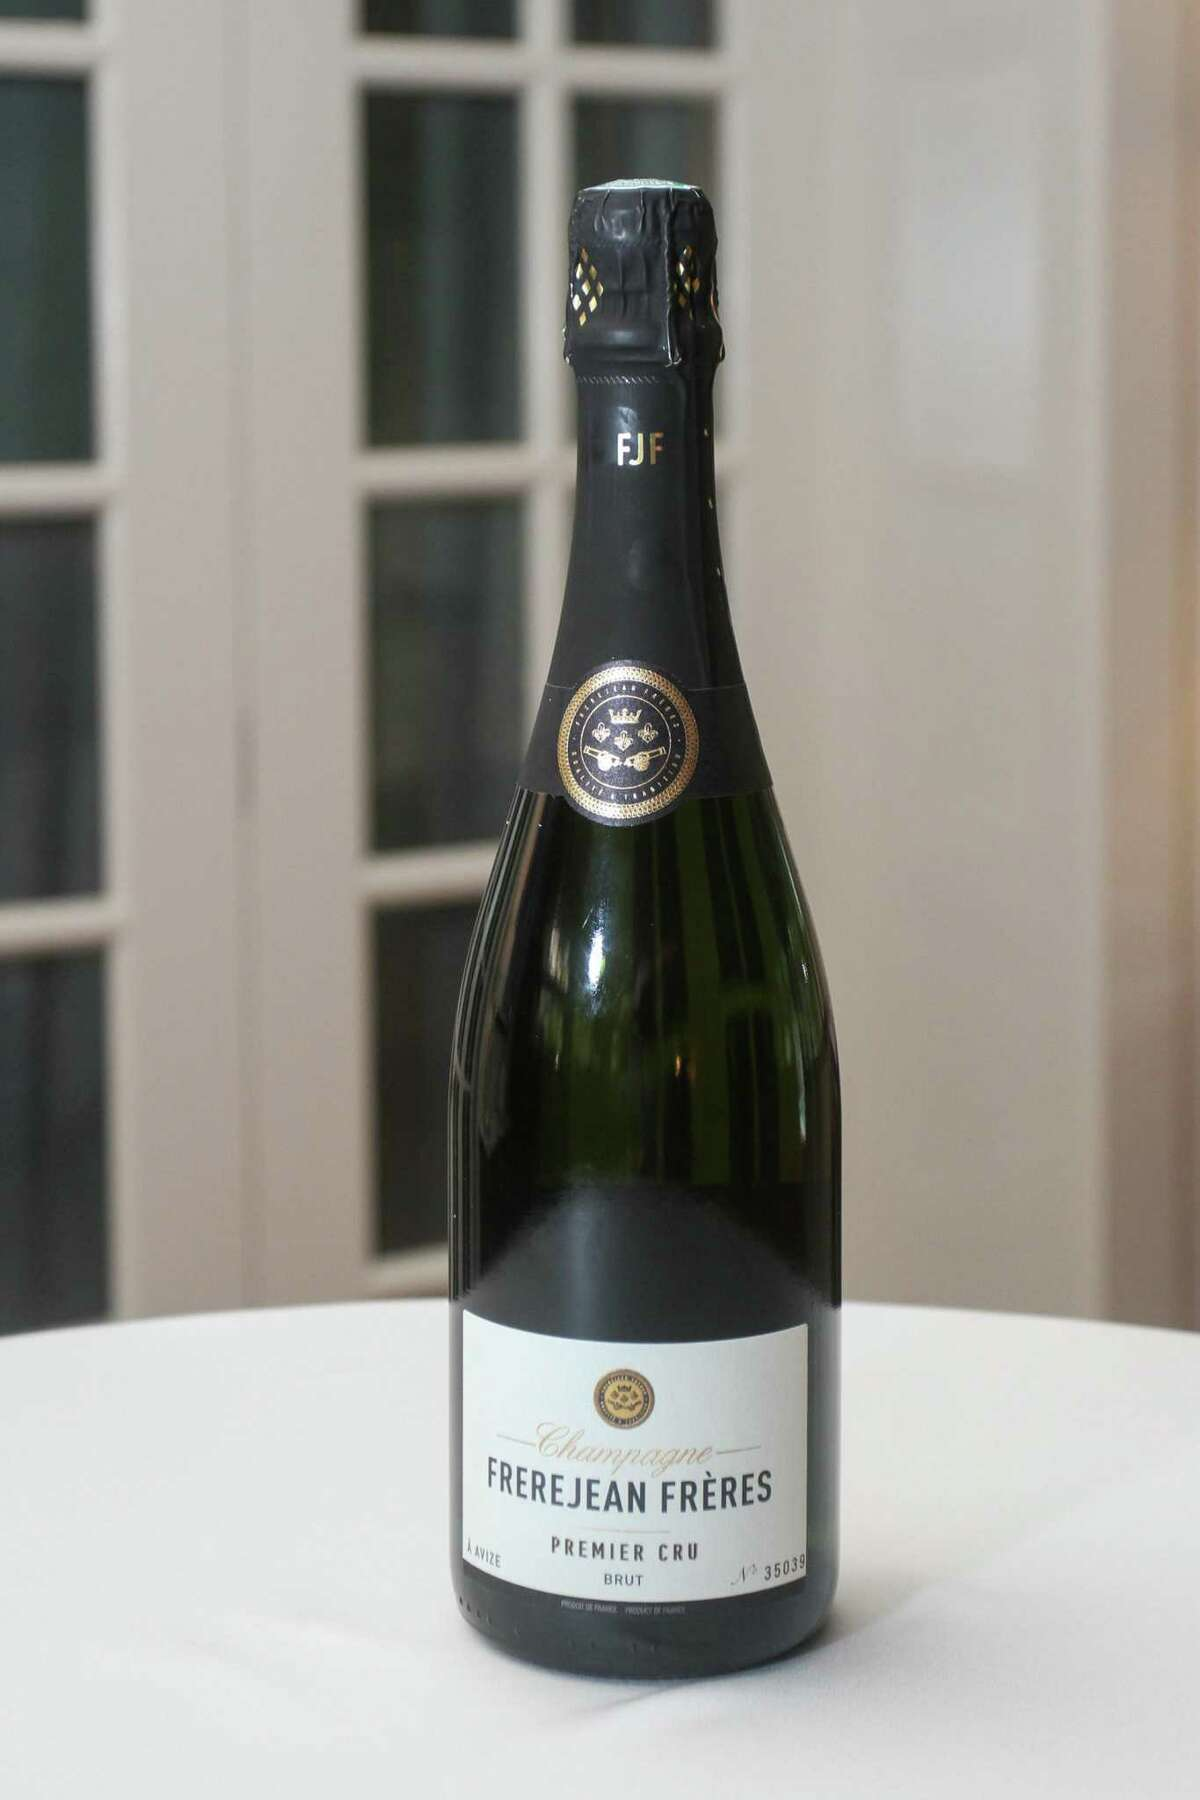 Frerejean Freres Champagne